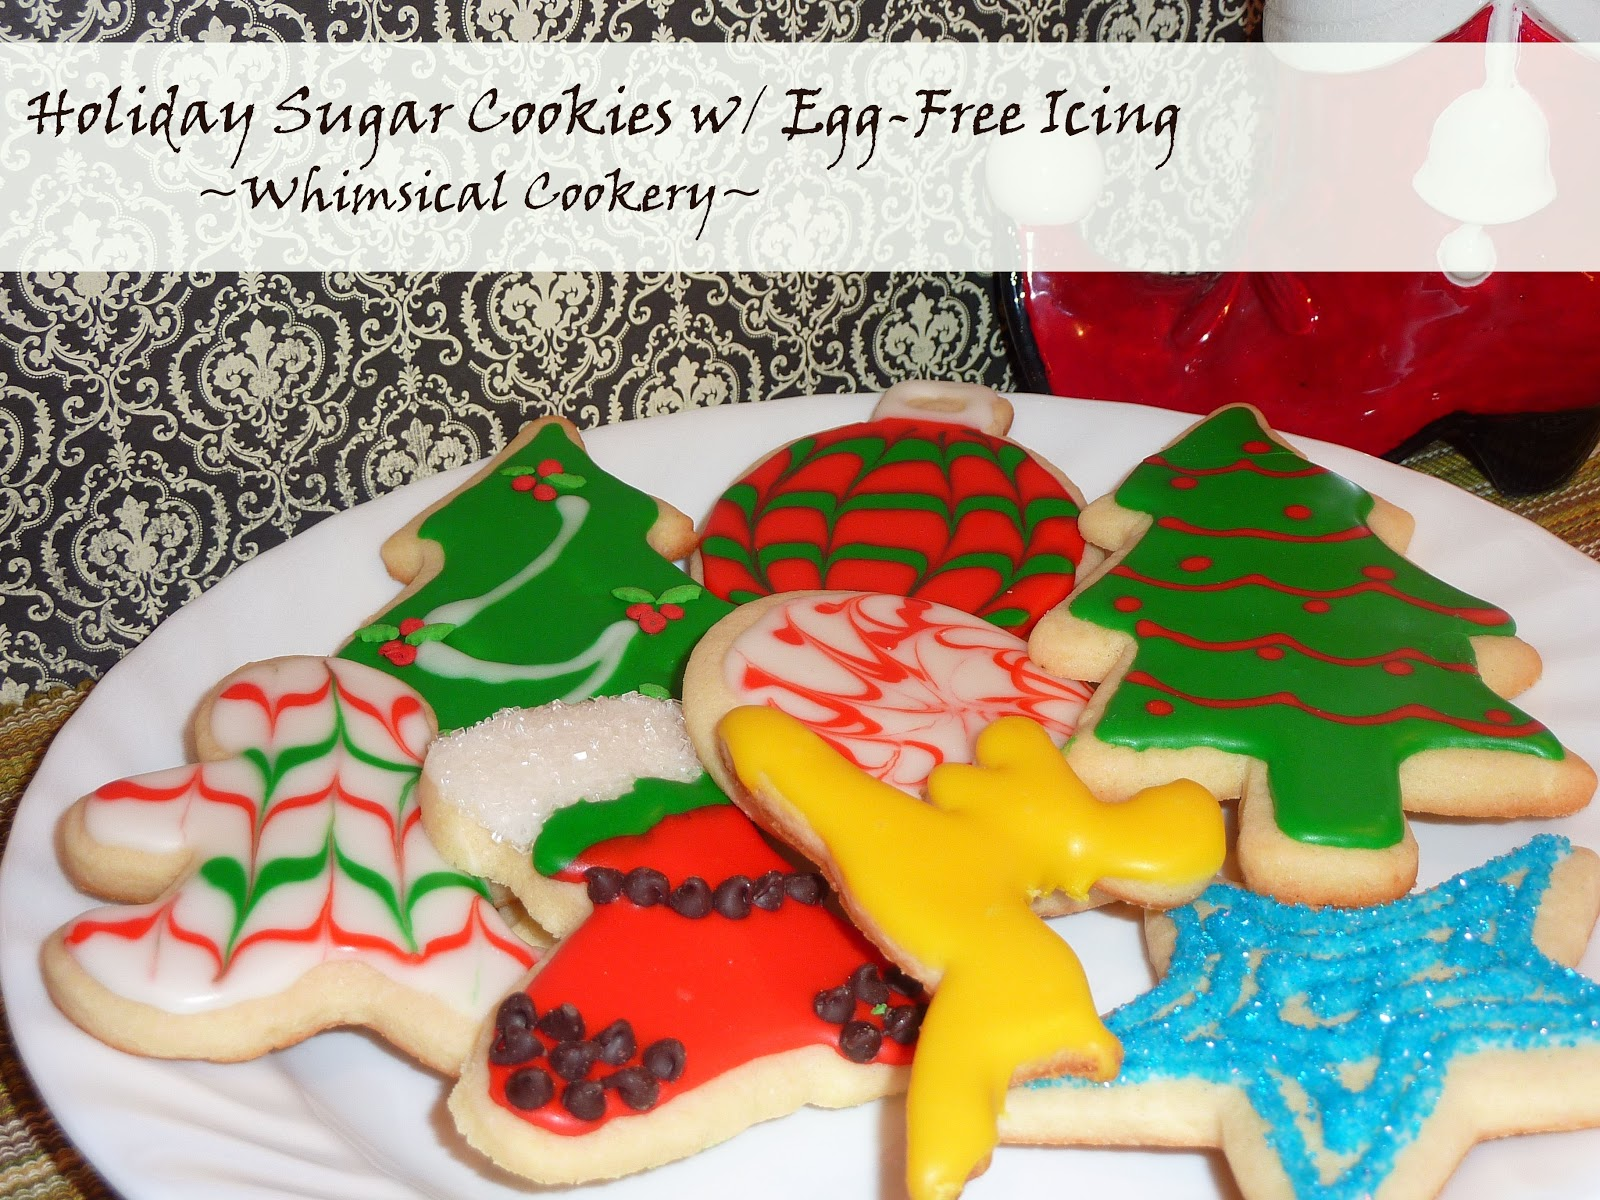 http://whimsicalcookery.blogspot.co.uk/2012/12/holiday-sugar-cookies-w-egg-free-faux.html